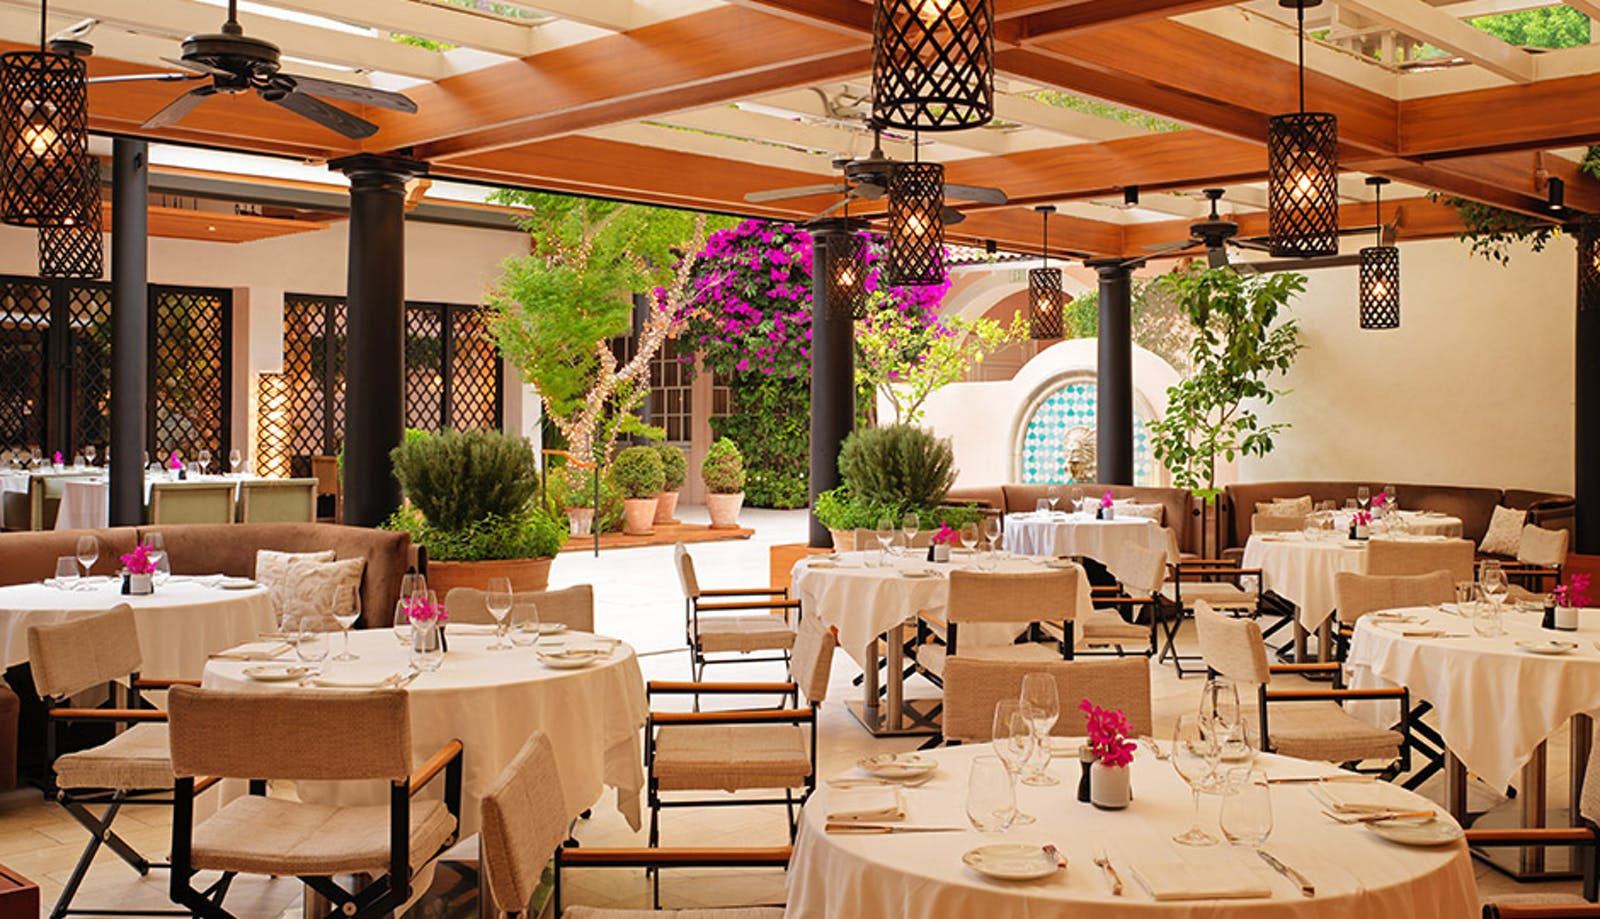 Wolfgang Puck Patio at Hotel Bel-Air